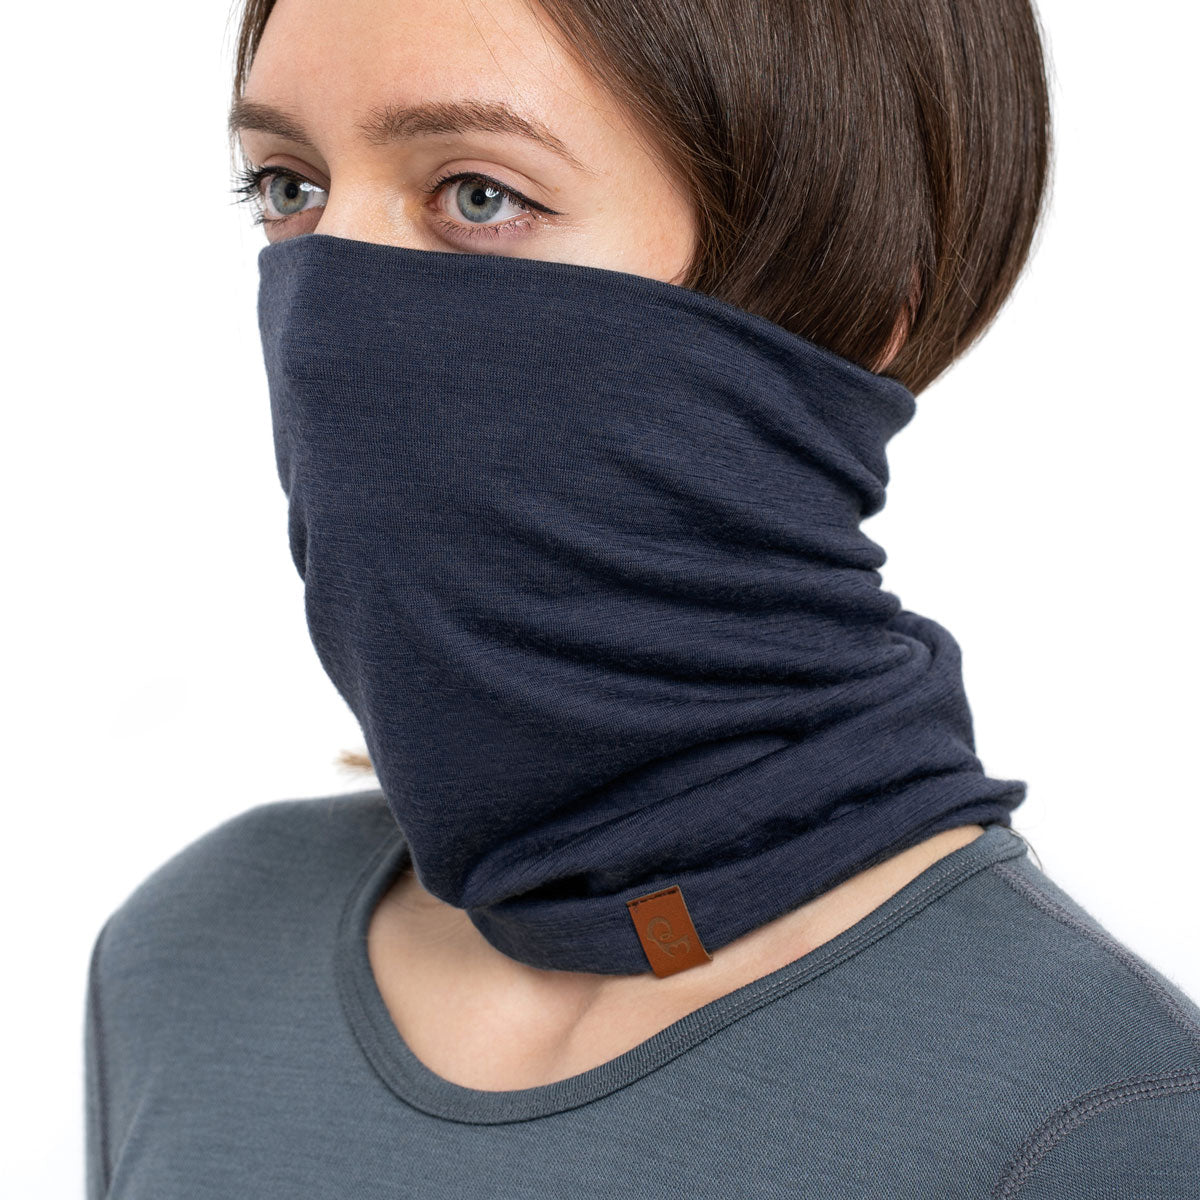 menique Merino wool womens neck gaiter dark blue